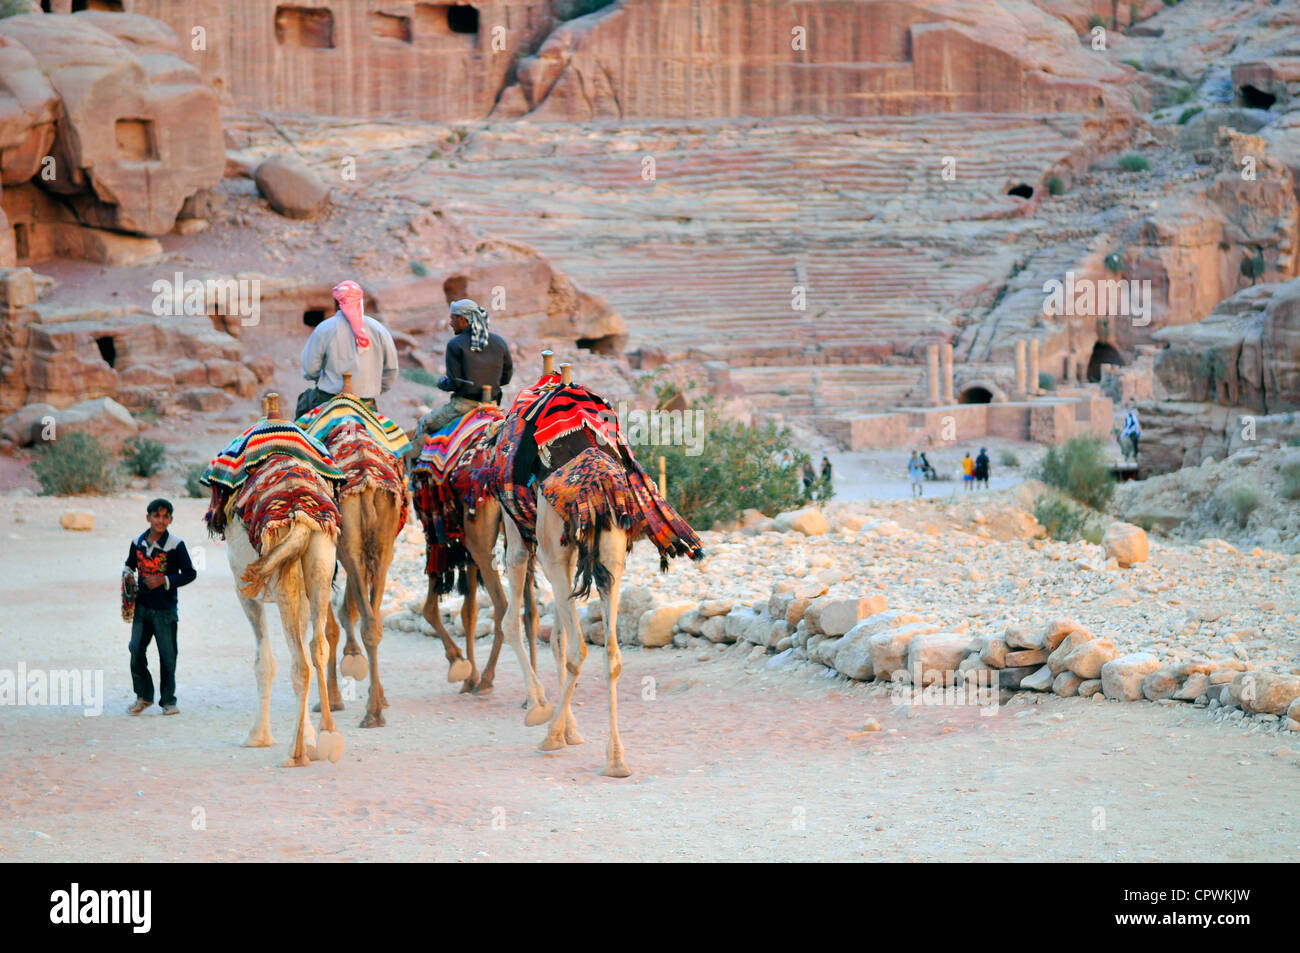 Asia Jordan Petra The main street of Petra and the Roman theater in the background - Stock Image